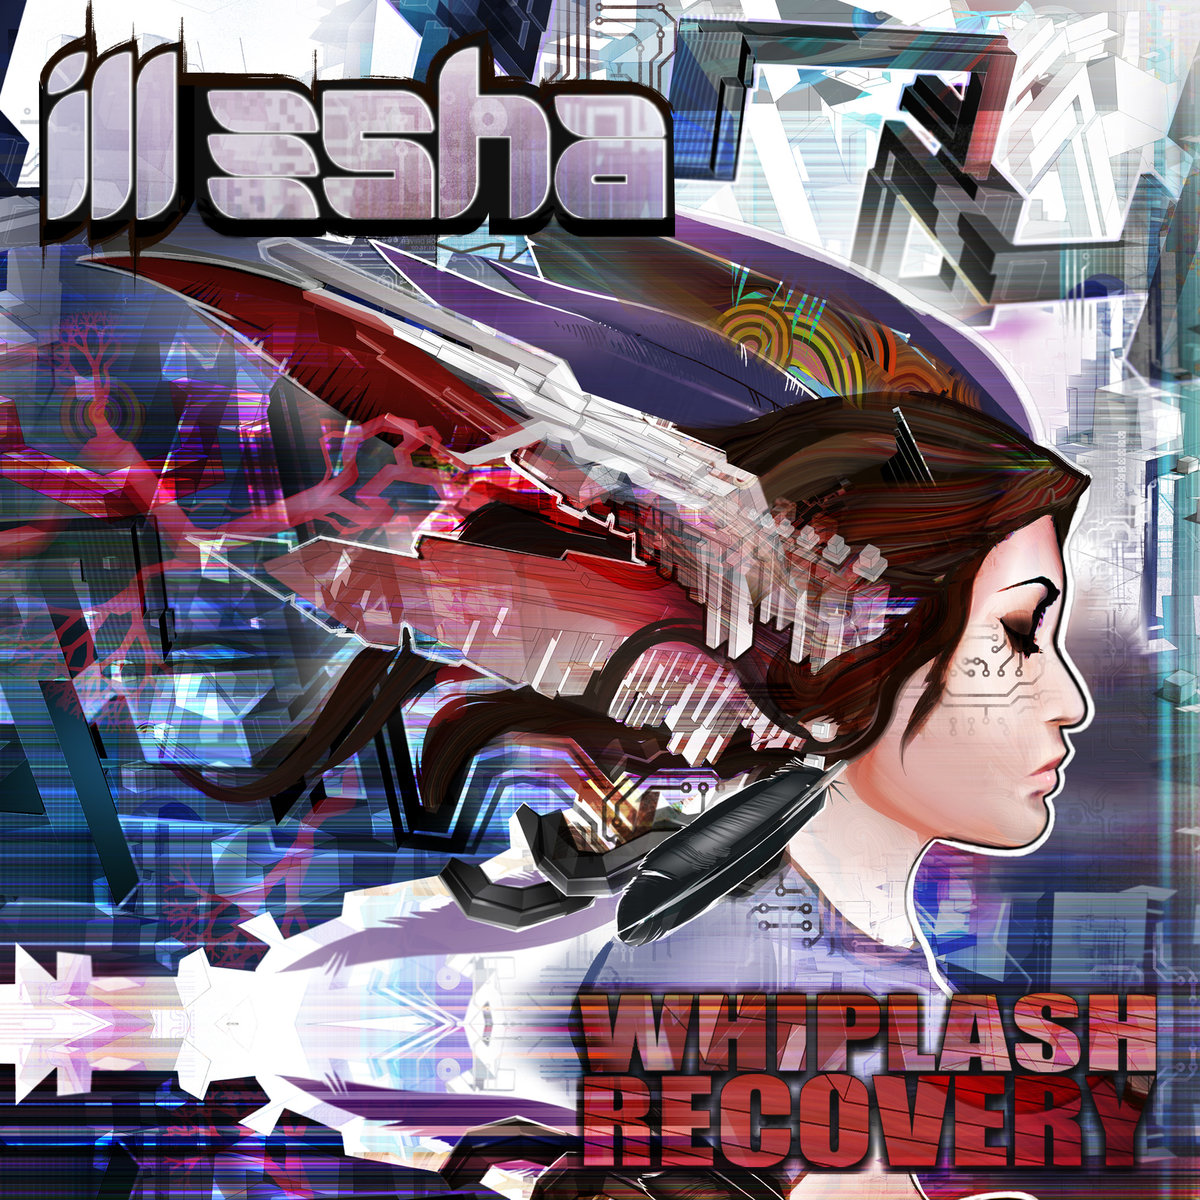 ill-esha - Sundrops @ 'Whiplash Recovery' album (california, denver)